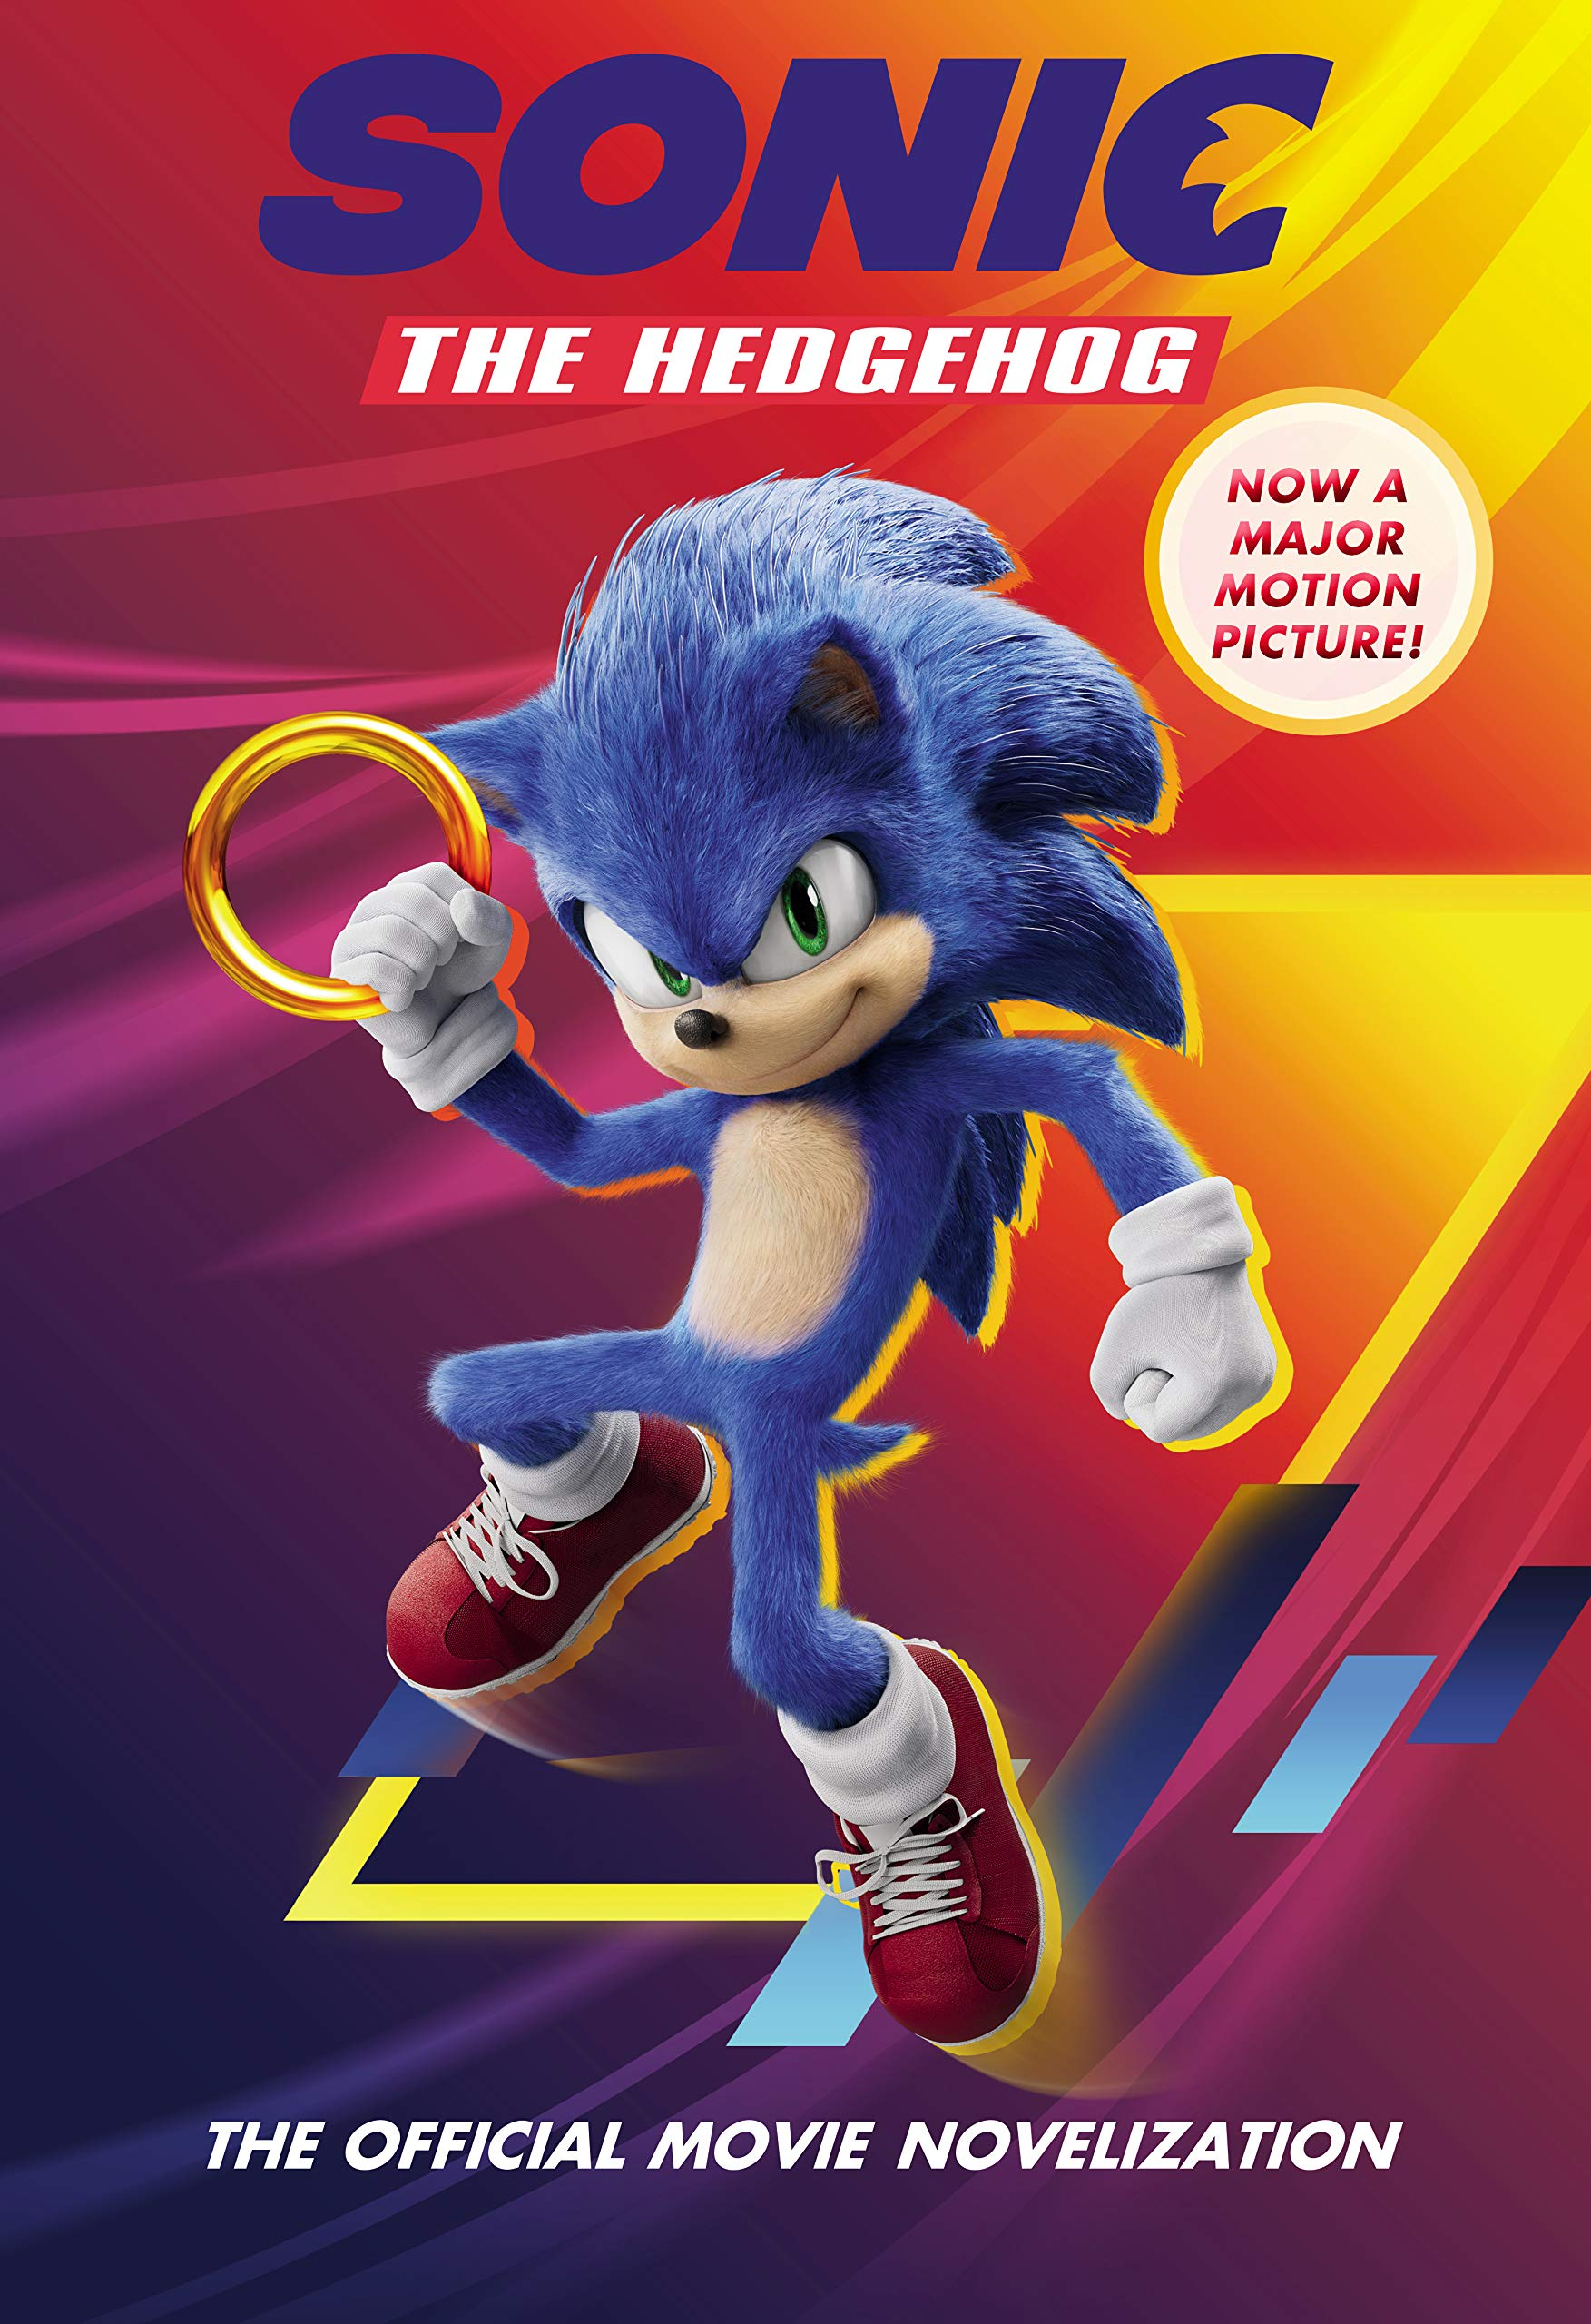 Sonic The Hedgehog The Official Movie Novelization Sonic News Network Fandom